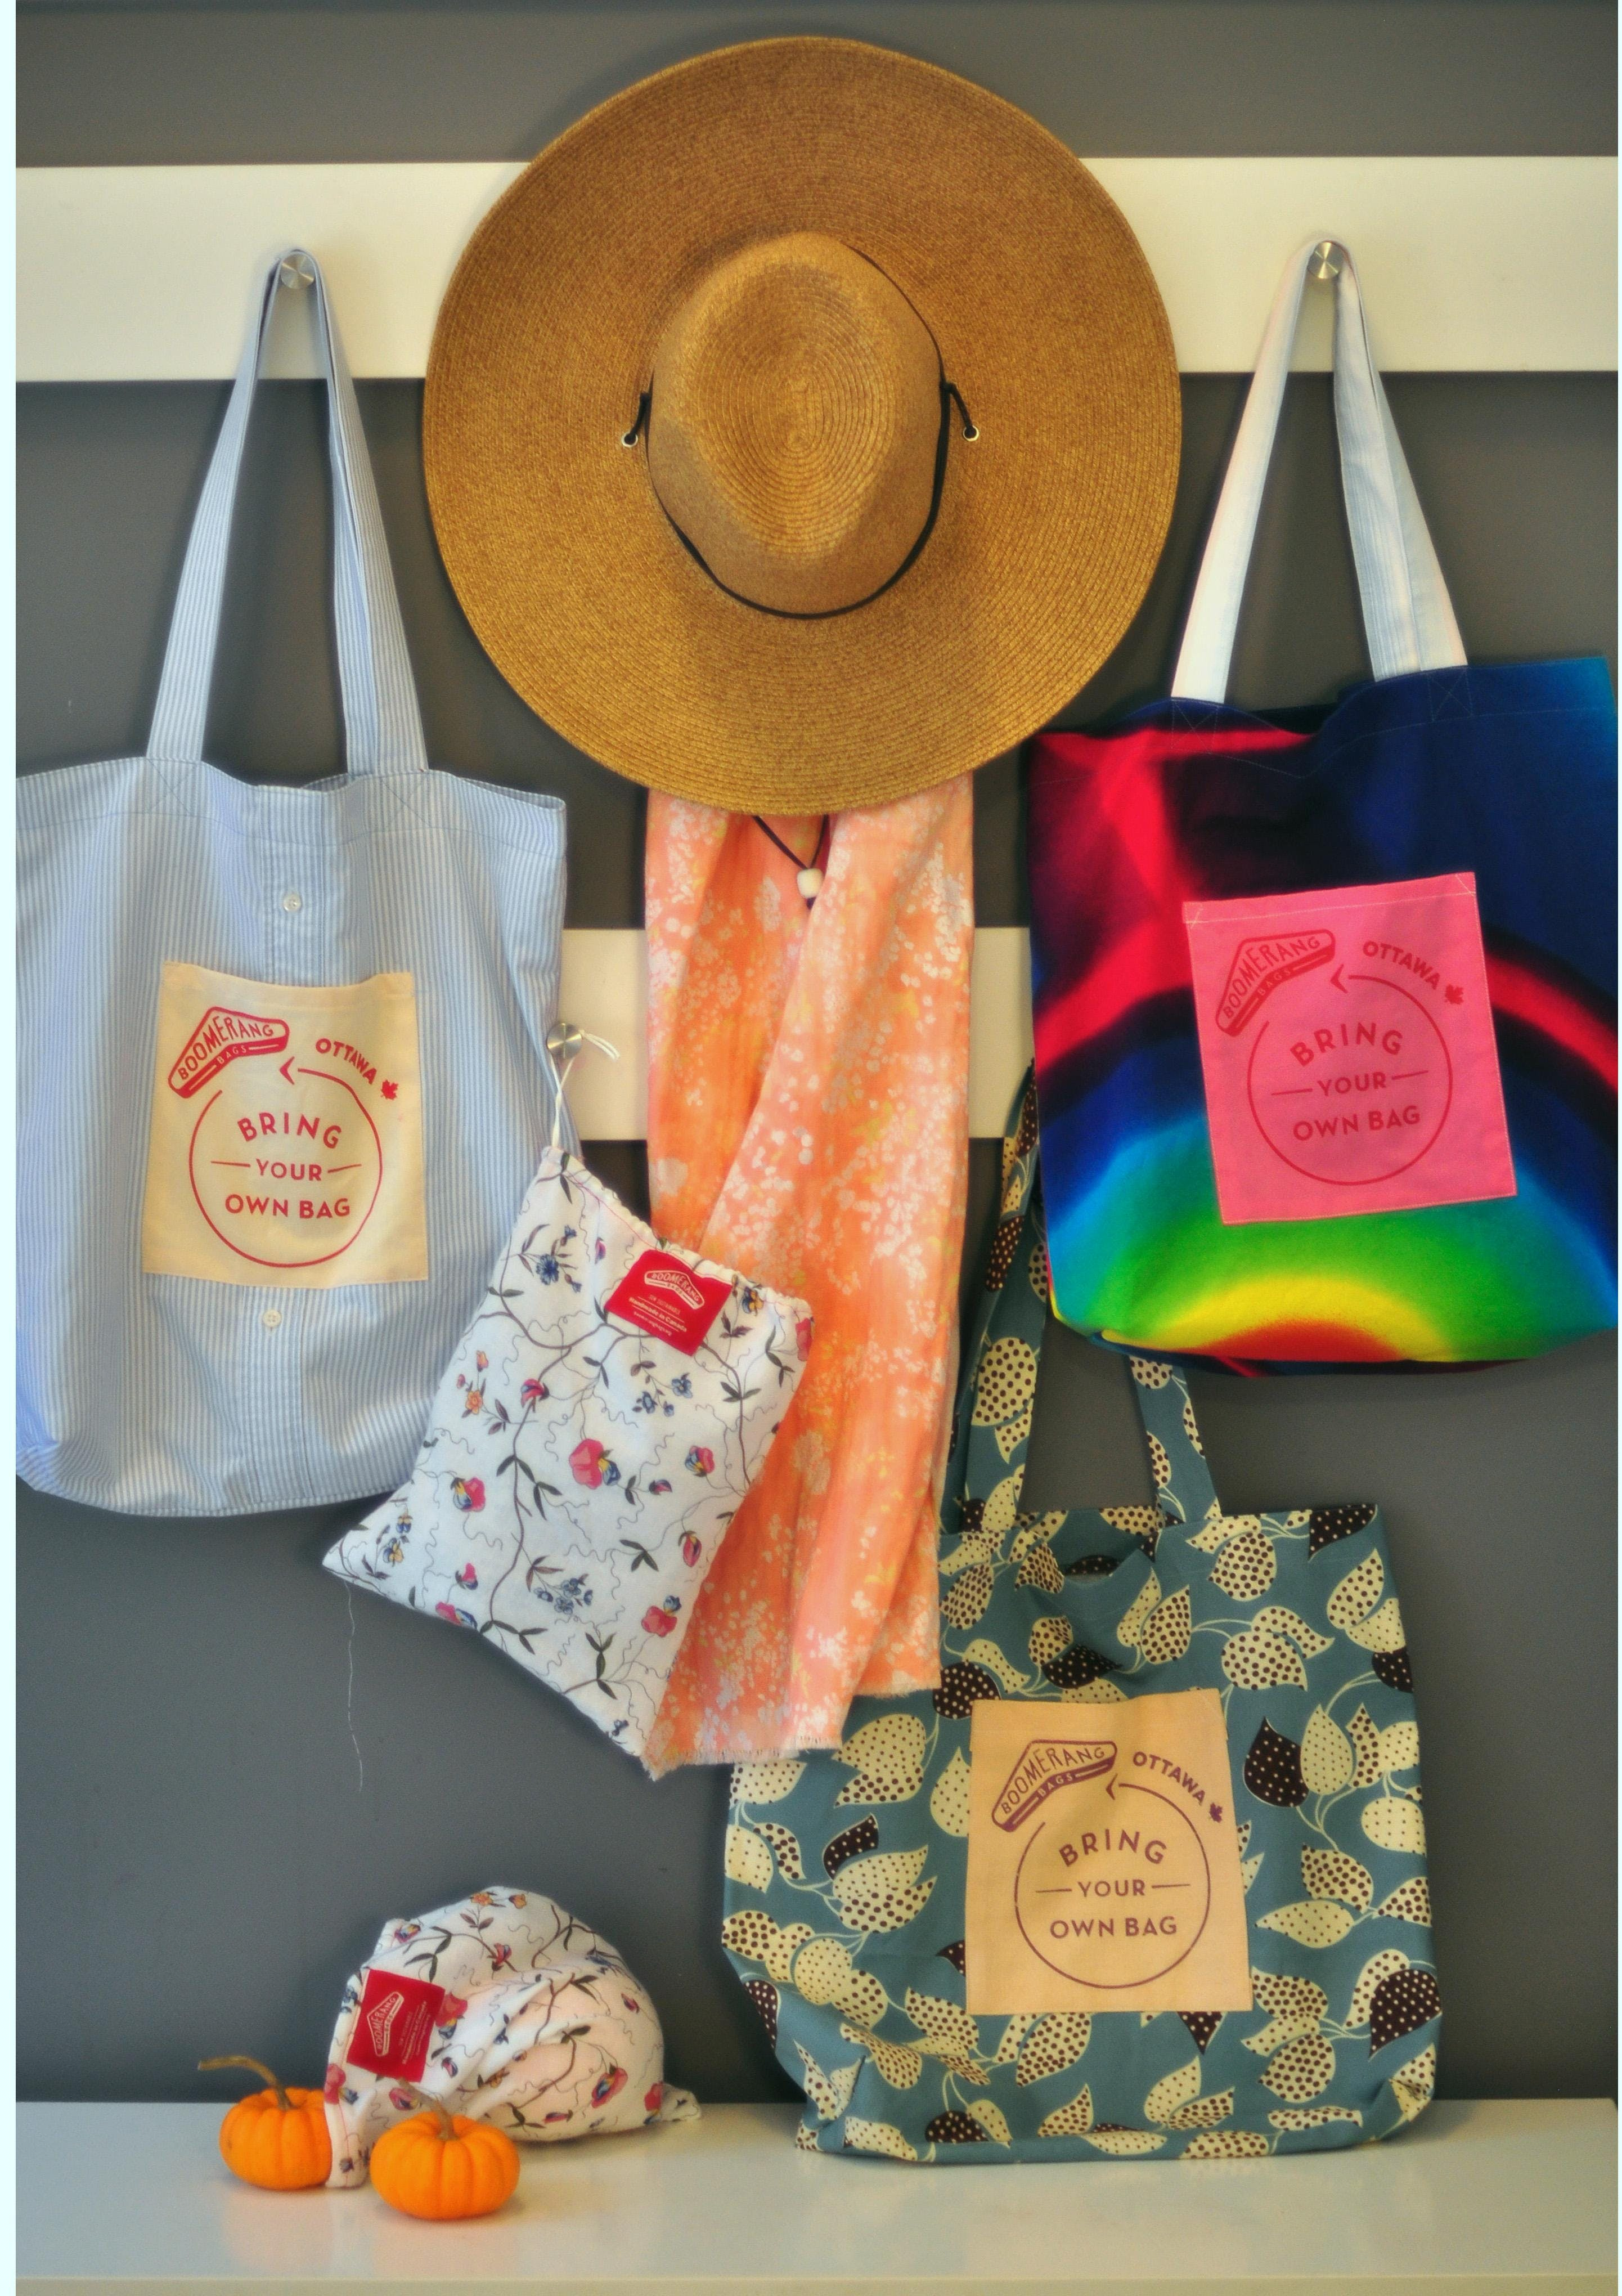 Make Your Own Shopping Bag from Recycled Fabr